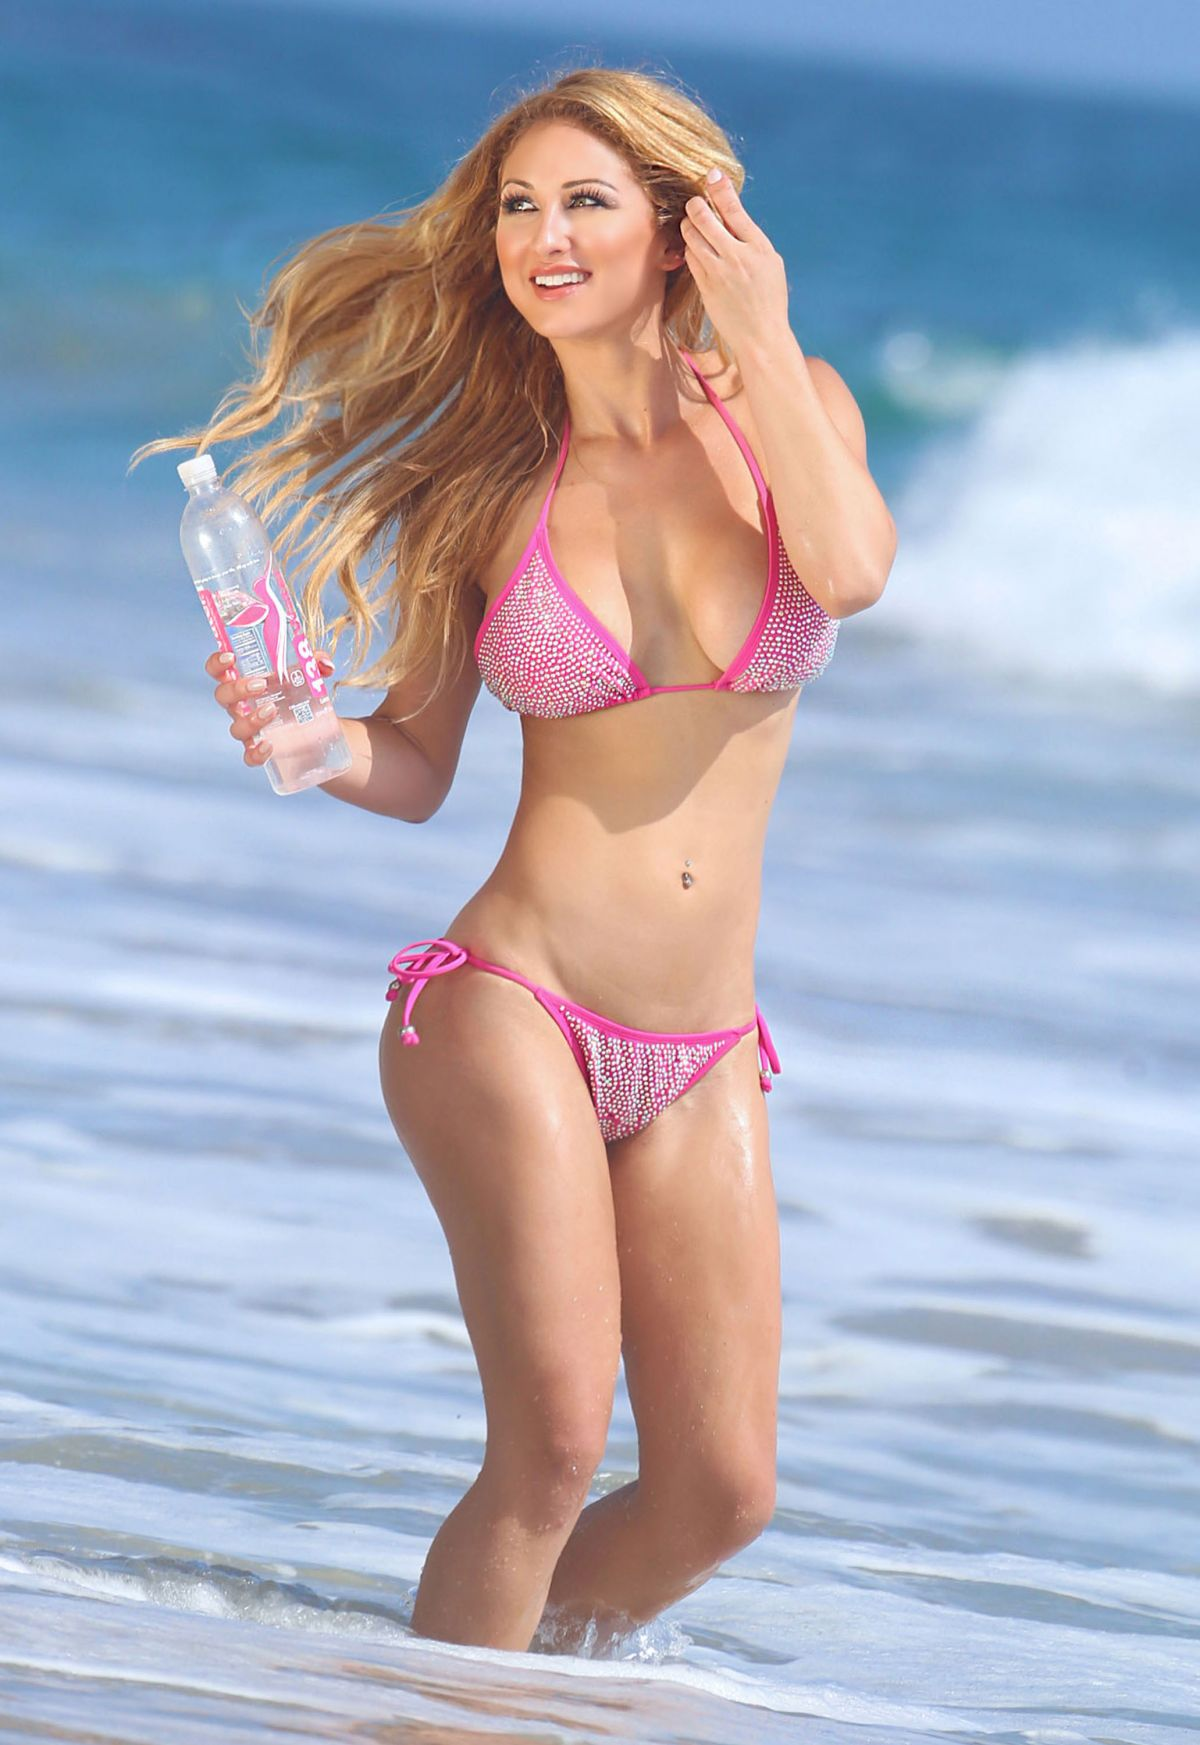 JESSICA MELODY in Bikini at Photoshoot for 138 Water in Malibu 08/27/2015